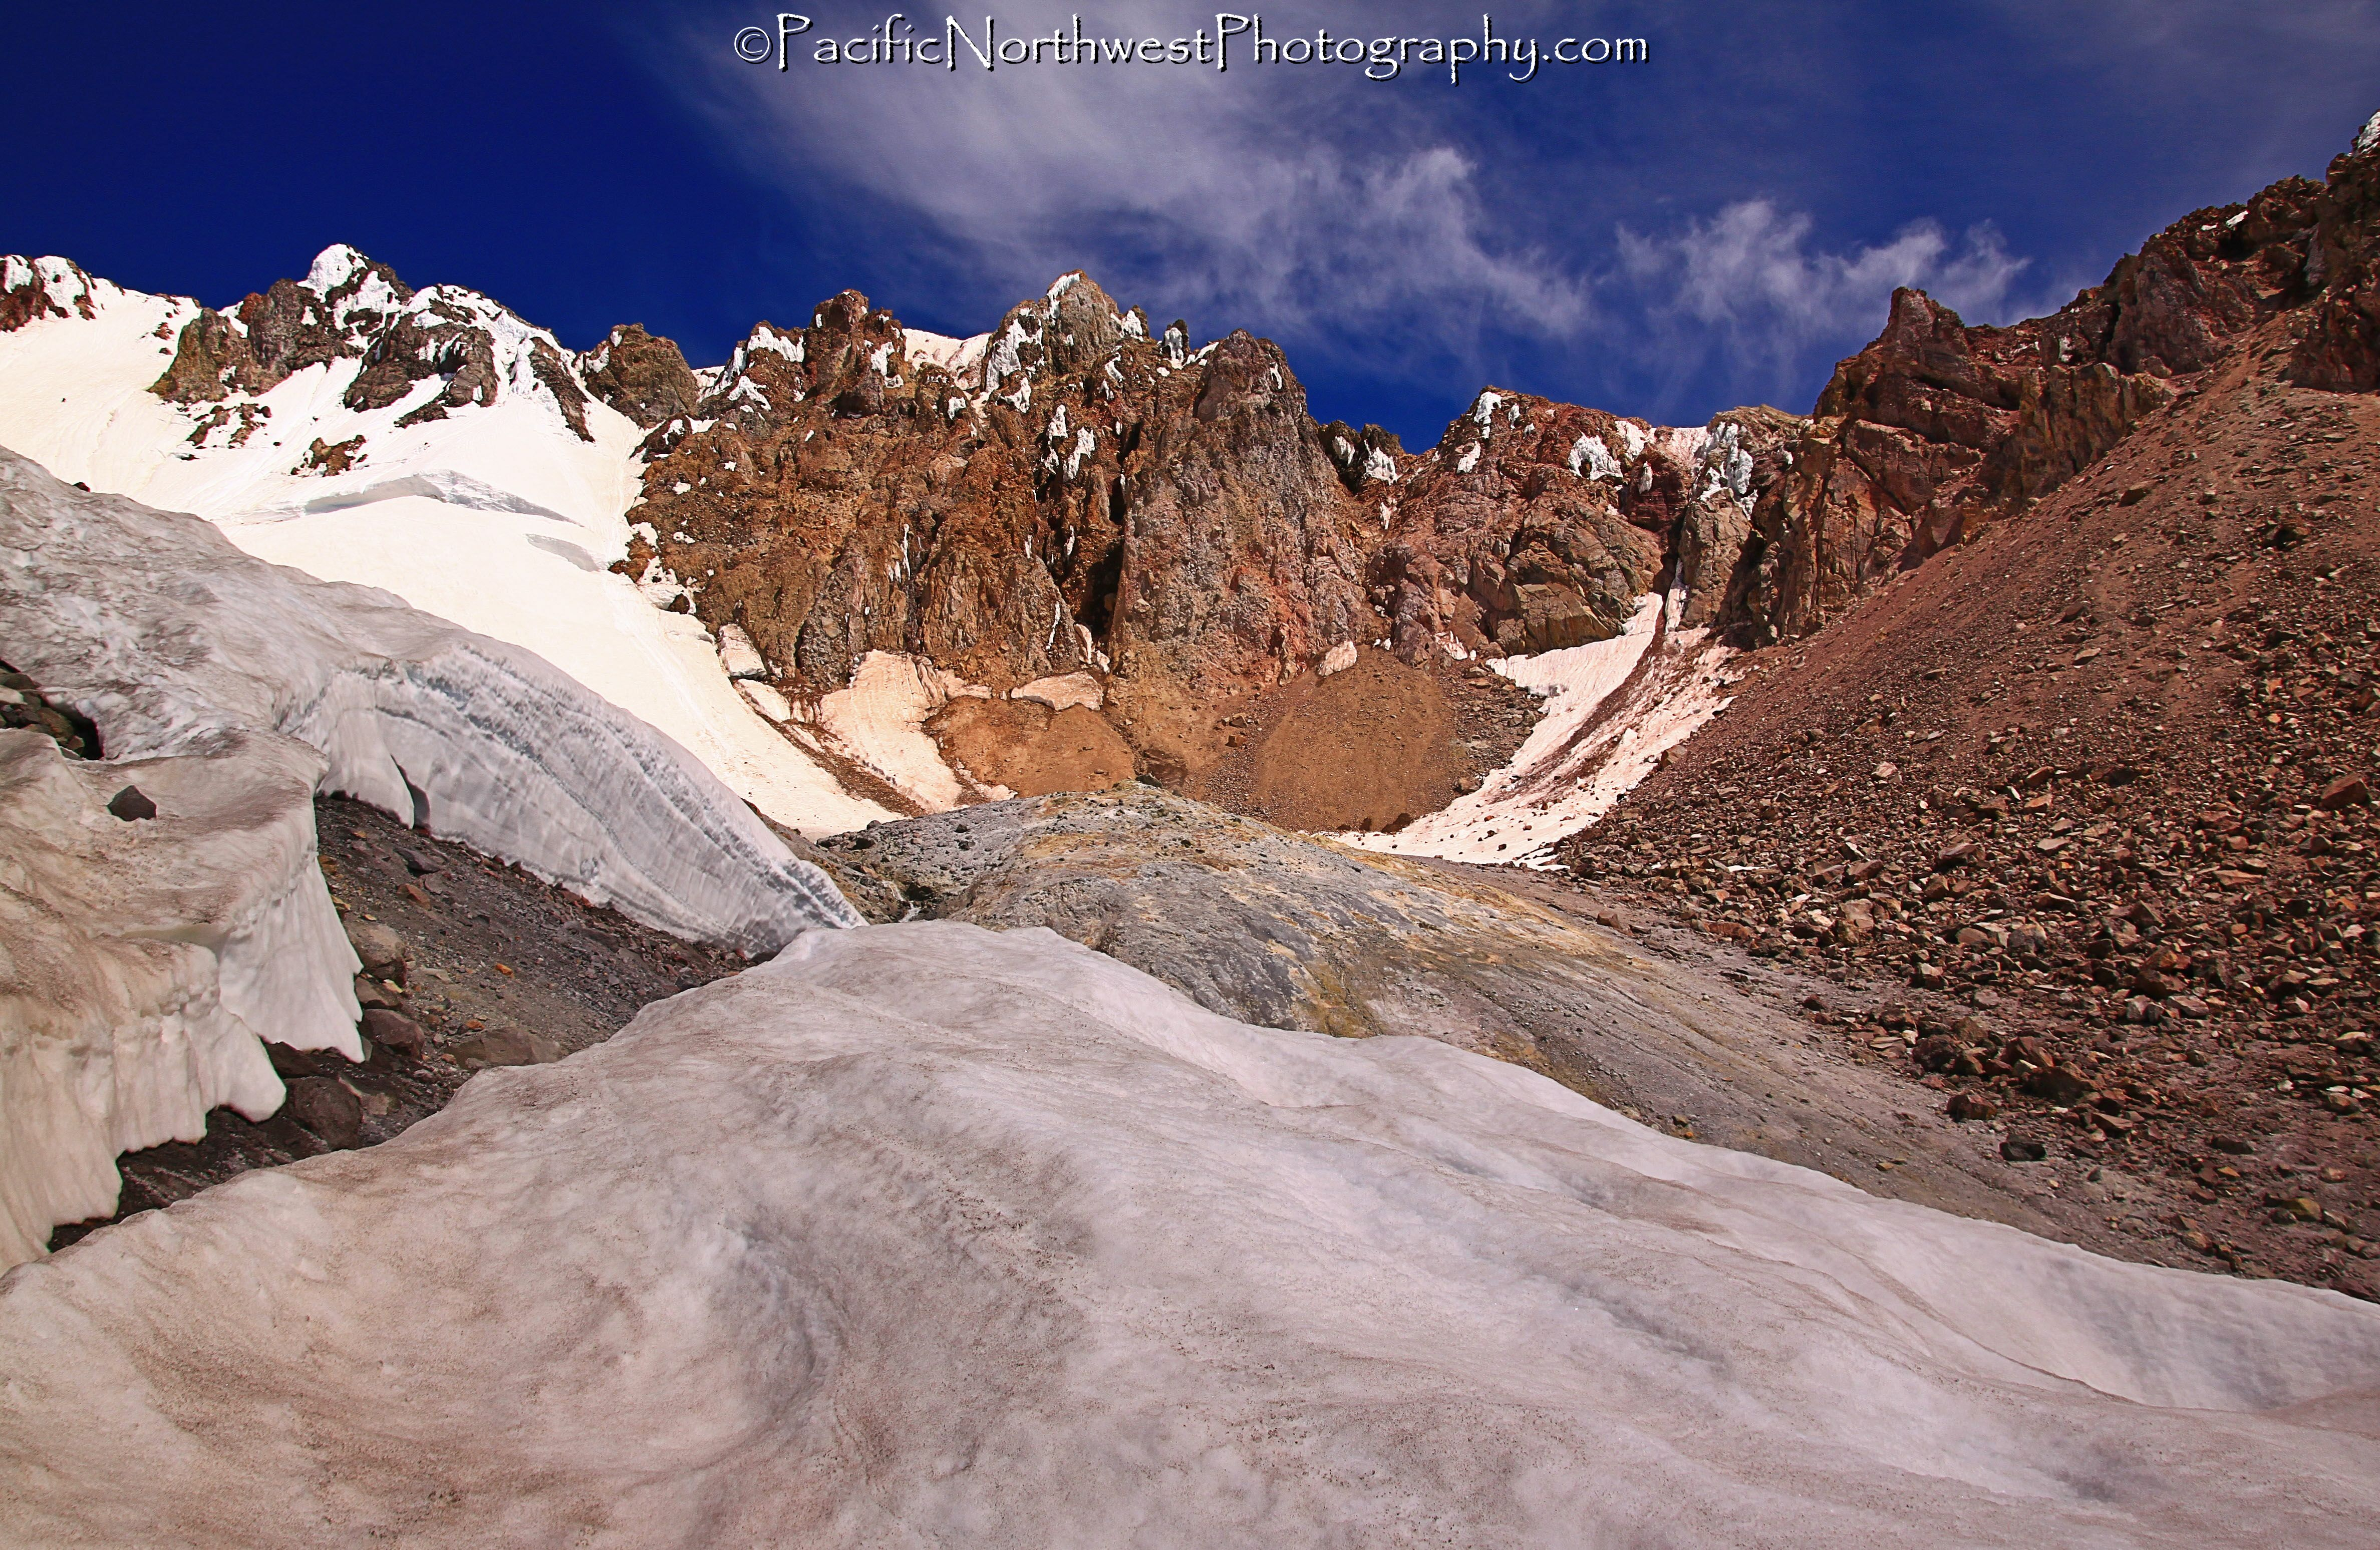 Glacier and vent below the summit